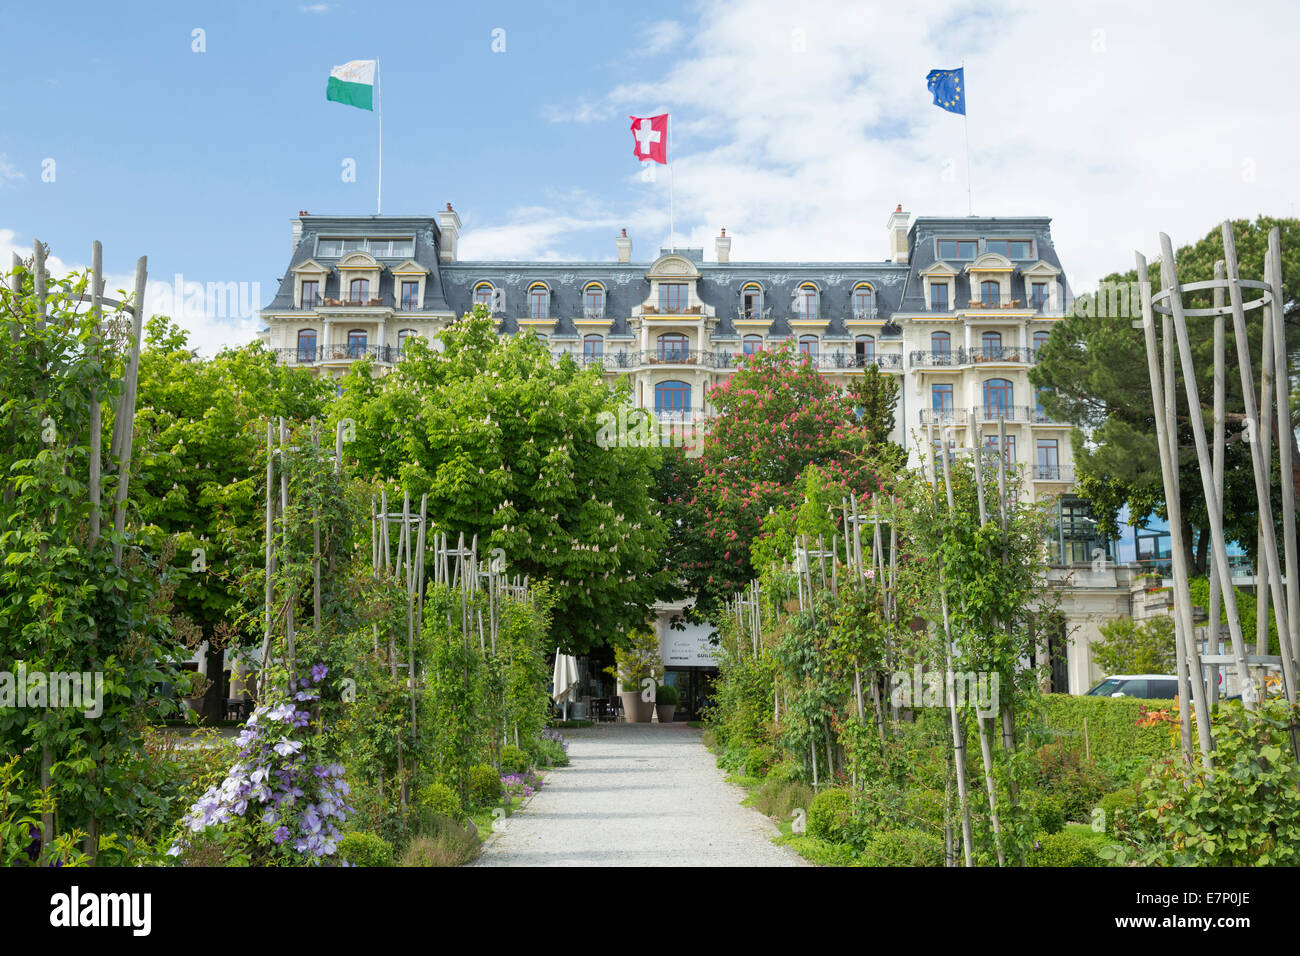 Hotel, beau Rivage Palace, Lausanne, canton, VD, Vaud, Western Switerland, Romandie, catering, restaurant, hotel, - Stock Image